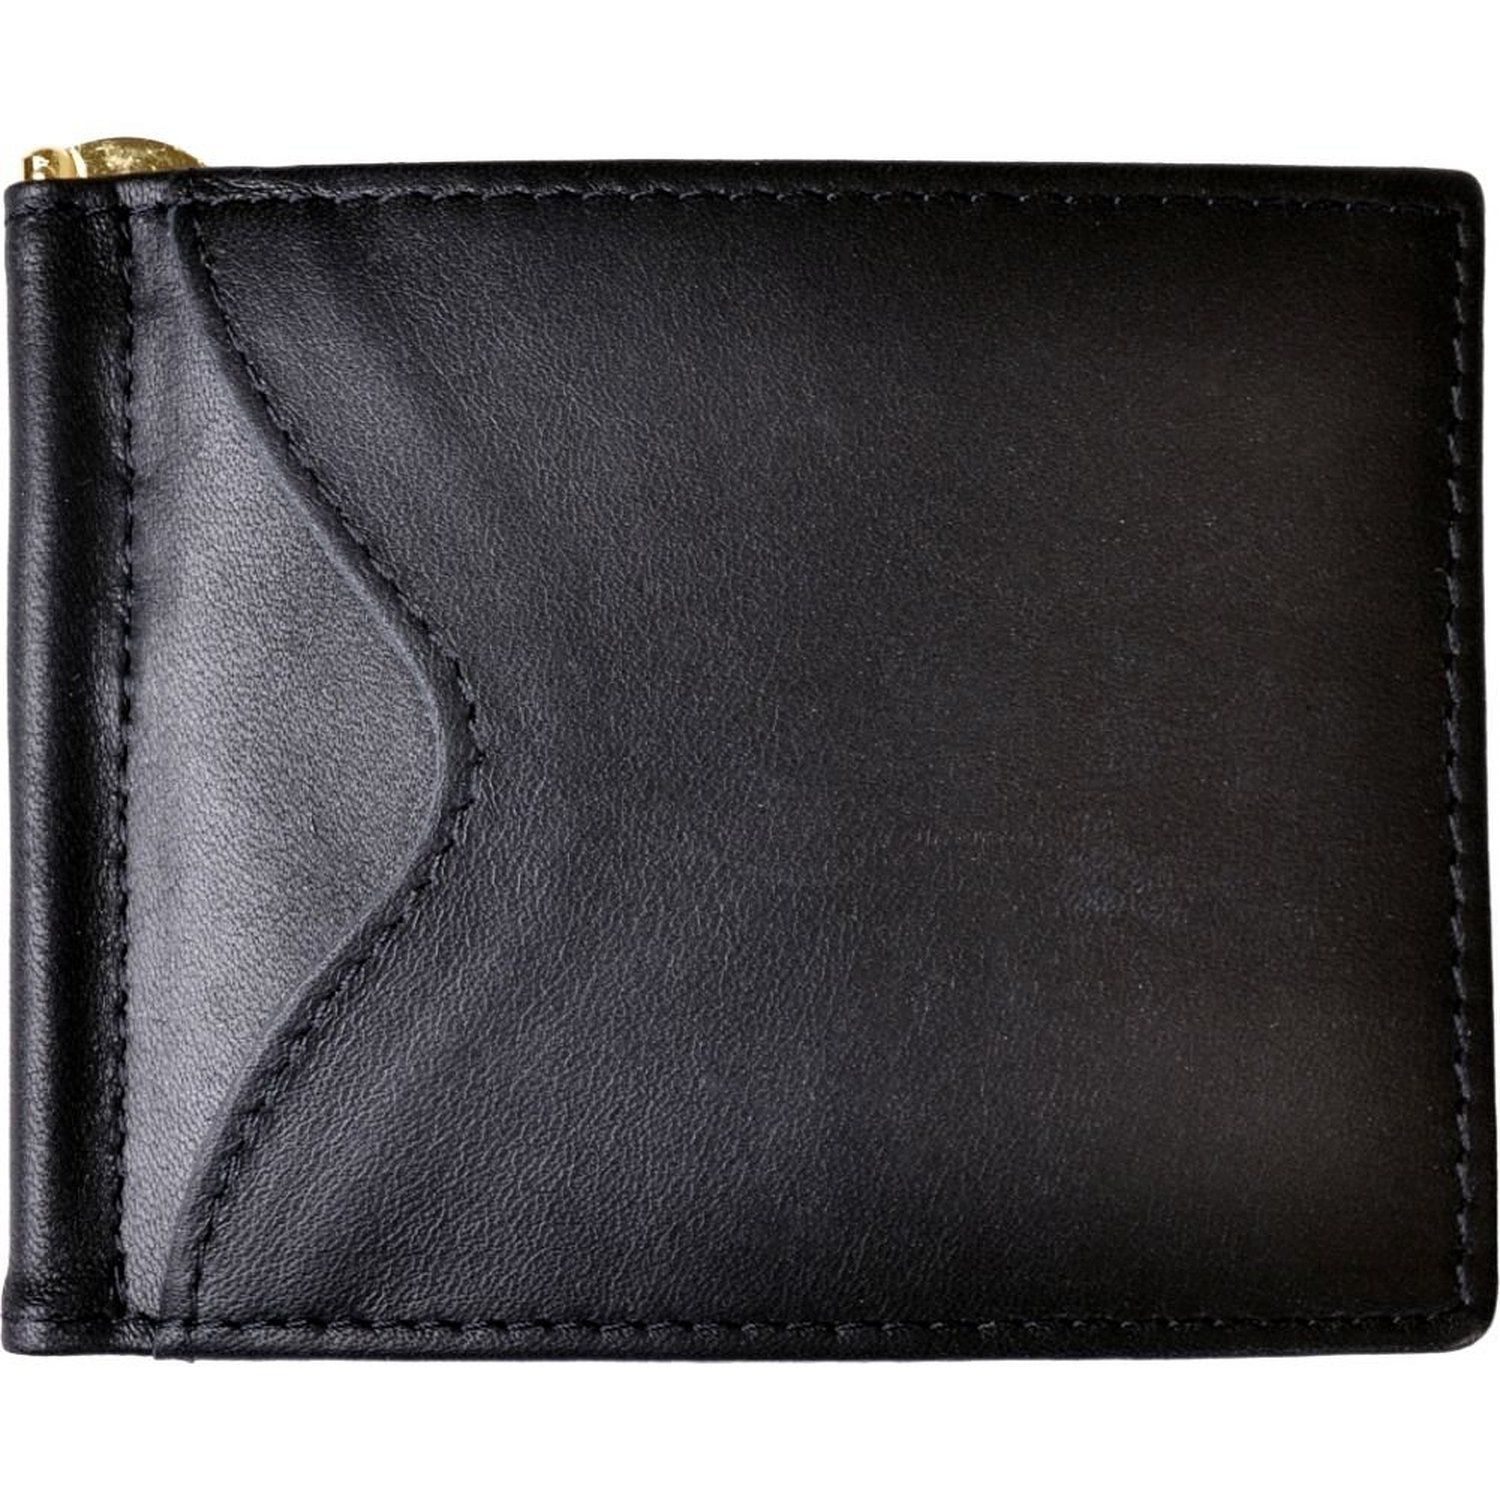 Royce Leather RFID Blocking Money Clip Credit Card Wallet in Leather, Black by Royce Leather